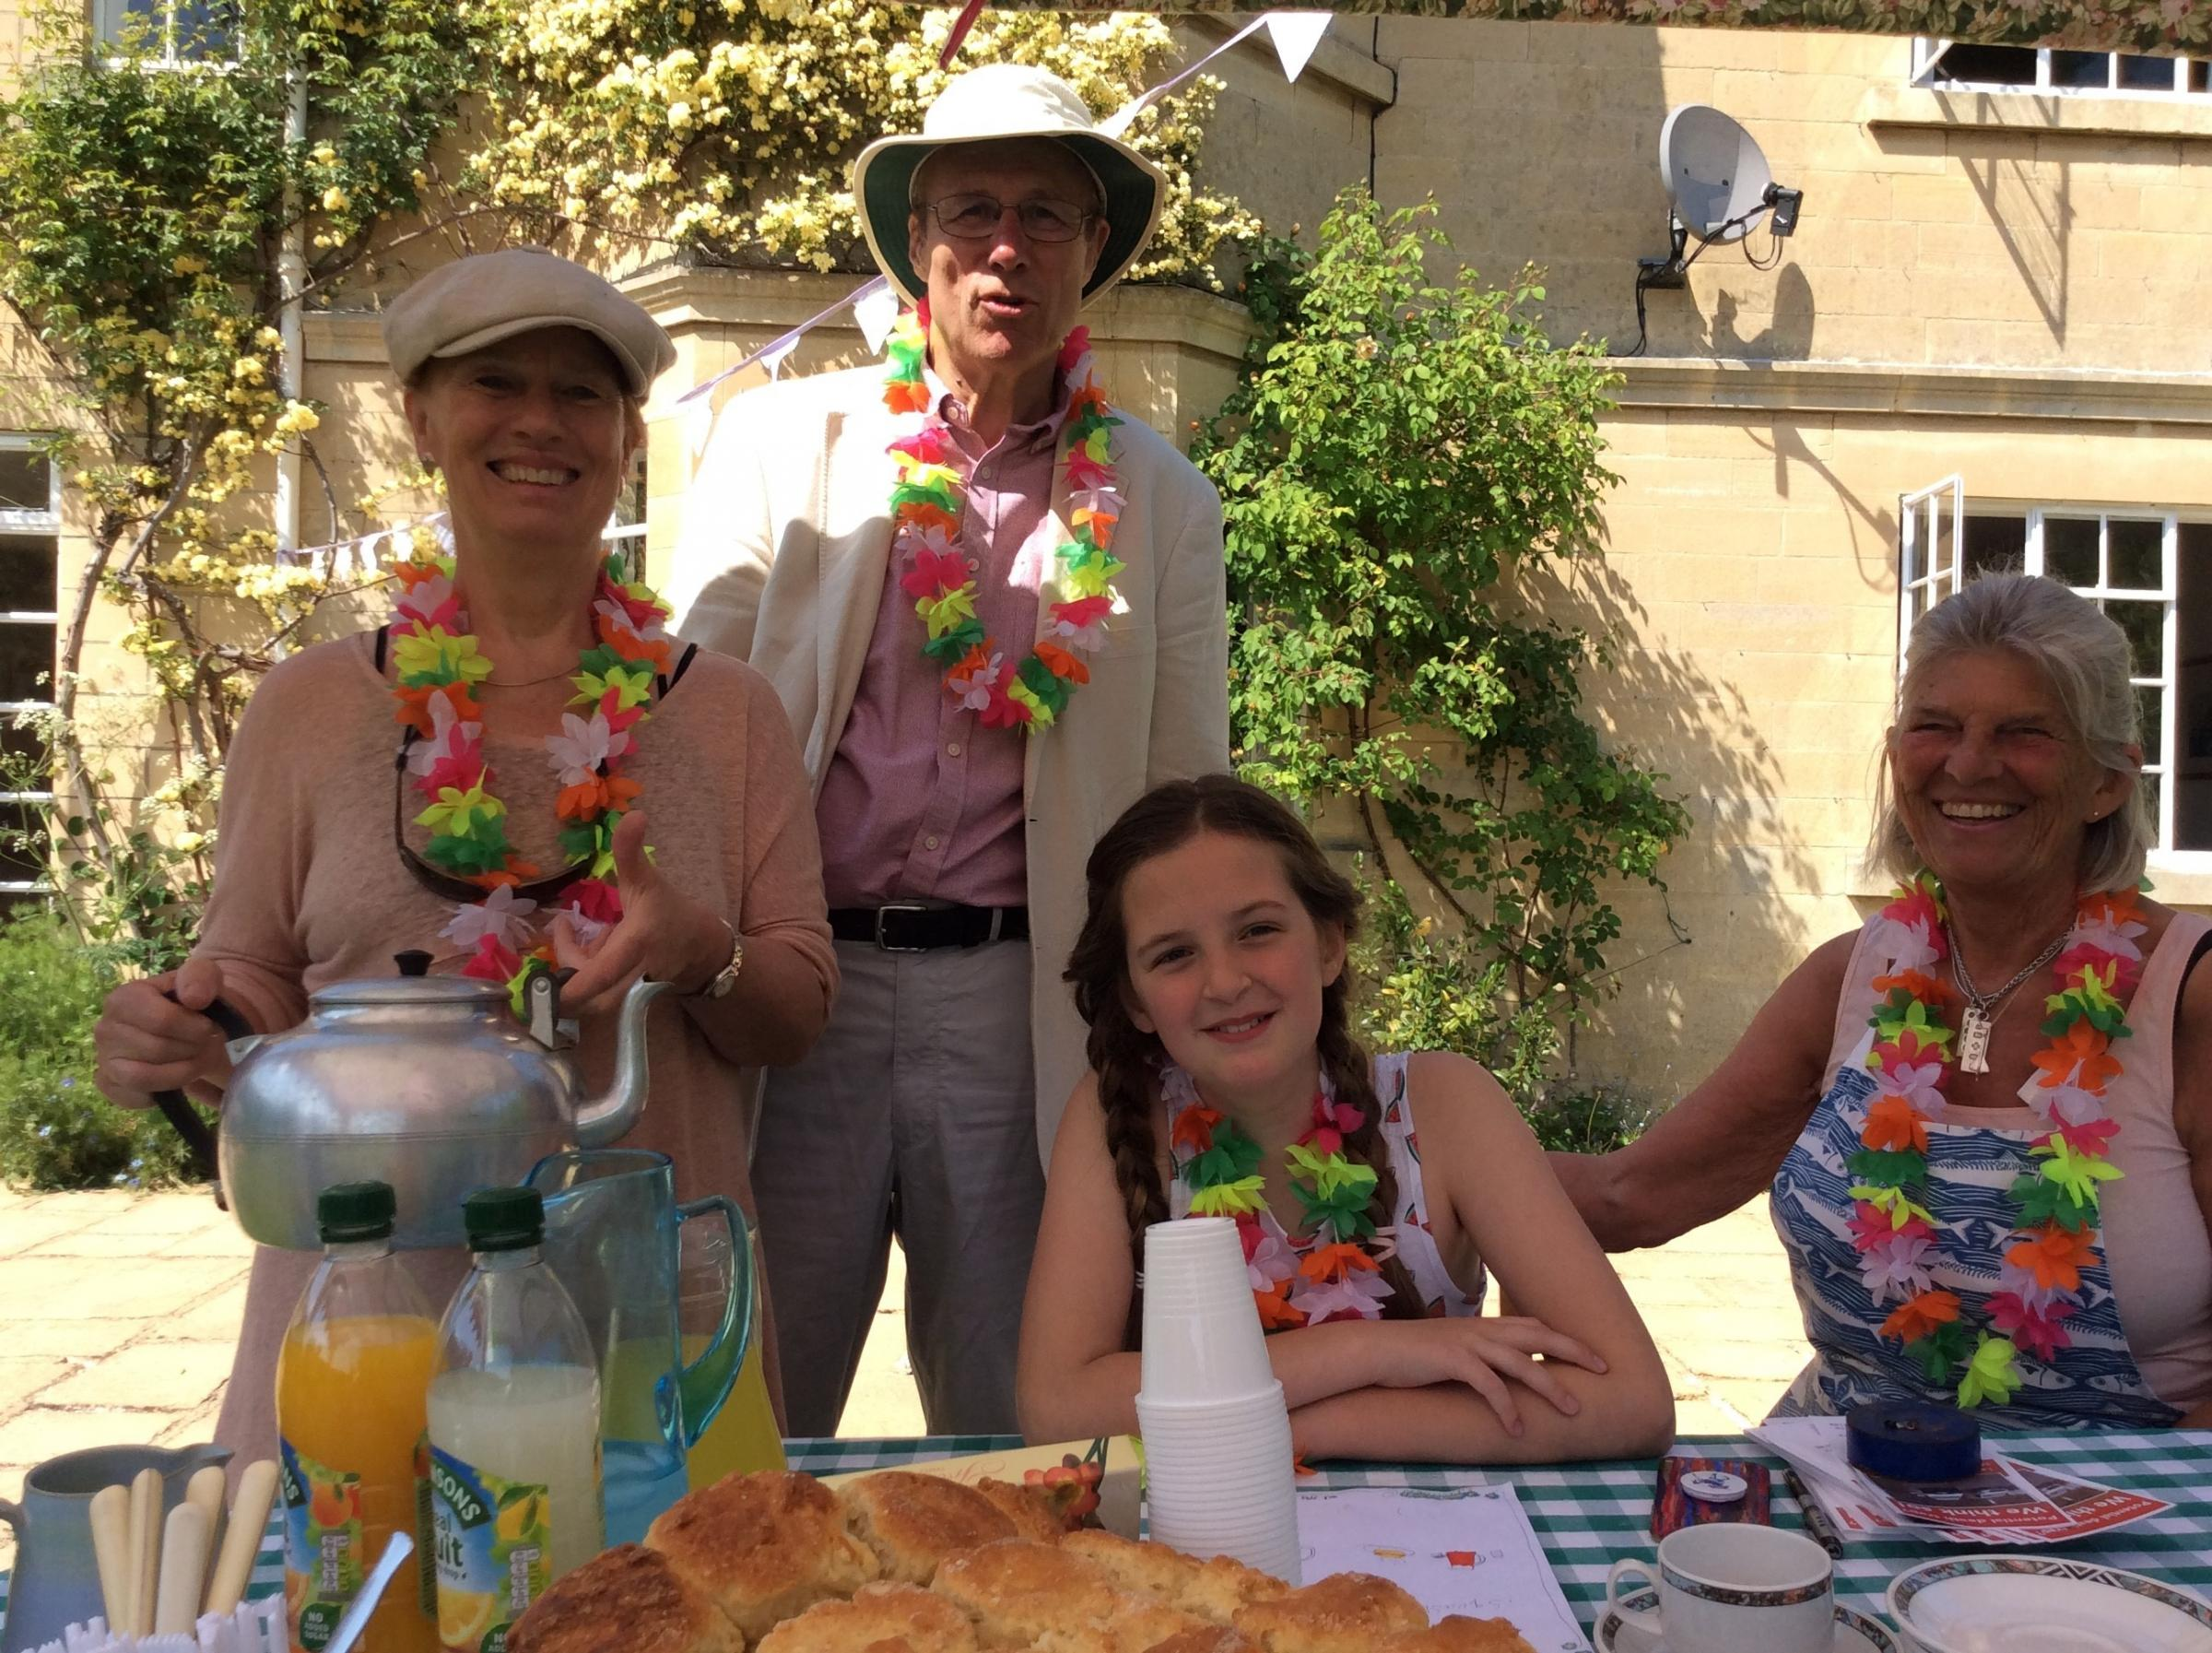 Dr Trisha Waters and Mike Daniel, of Winsley Hill Traffic Action Group, with Asha Fitzsimmons, 10, and Judy Spence, serving the cream teas to raise funds. Photo: John Baker